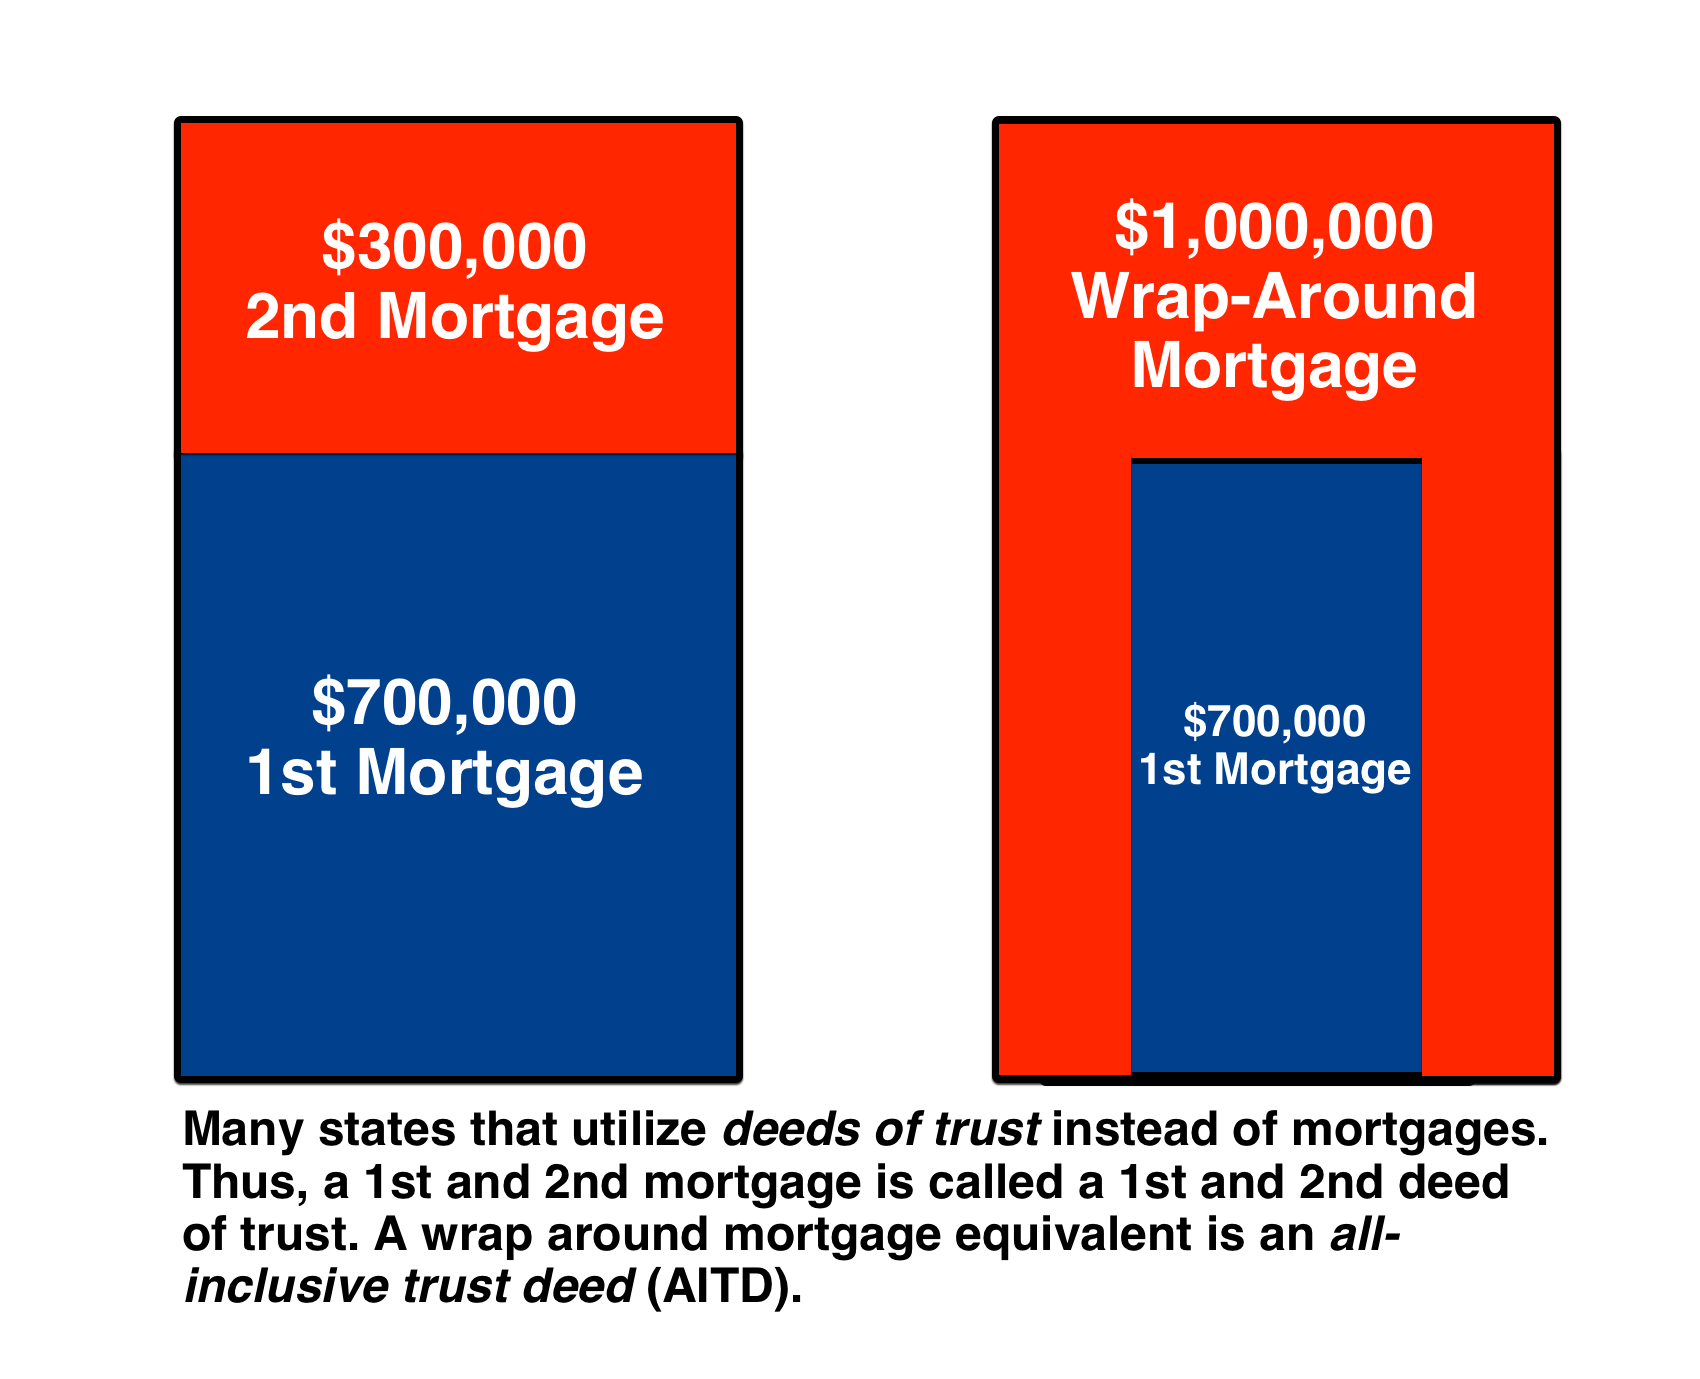 2nd Mortgage vs. Wrap Around Mortgage